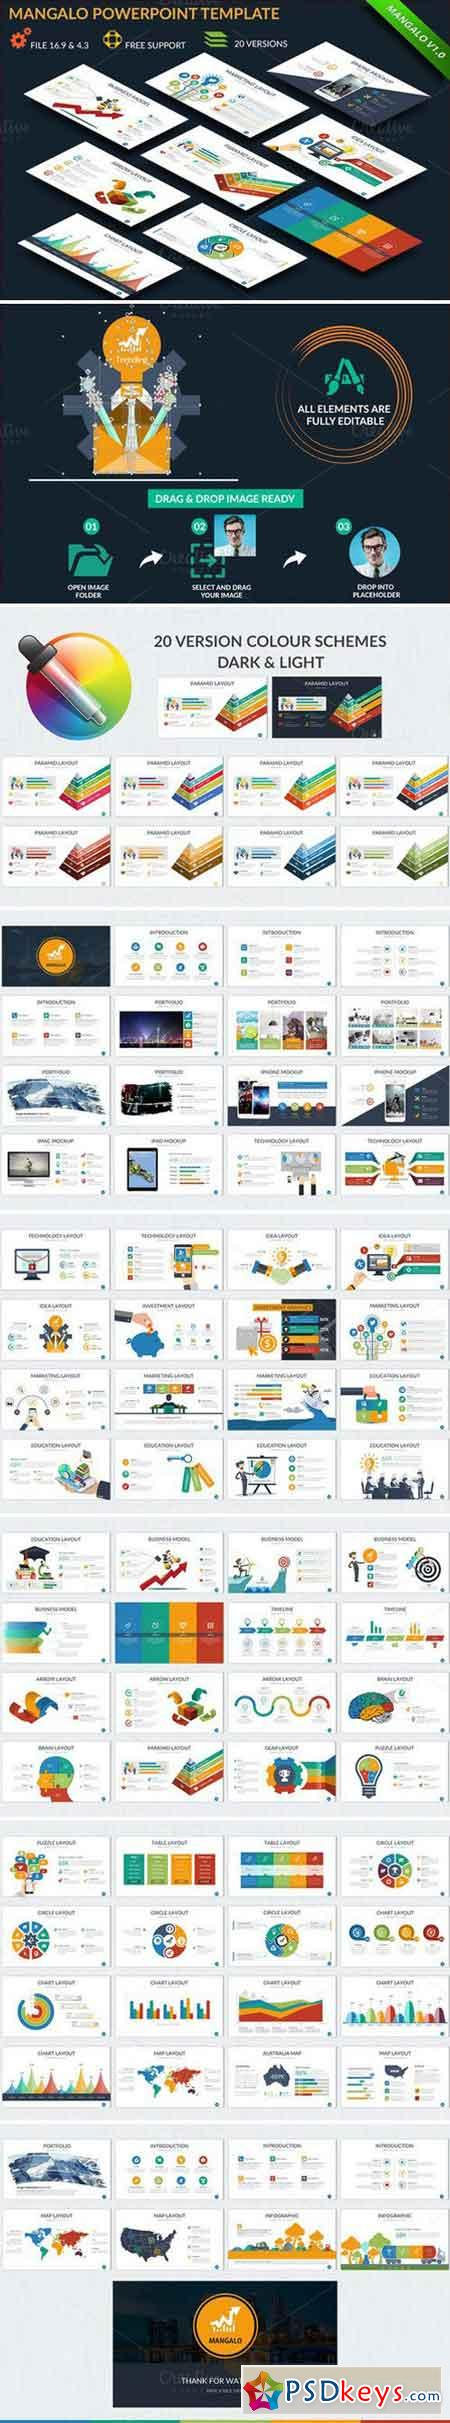 Mangalo Powerpoint Template 790567